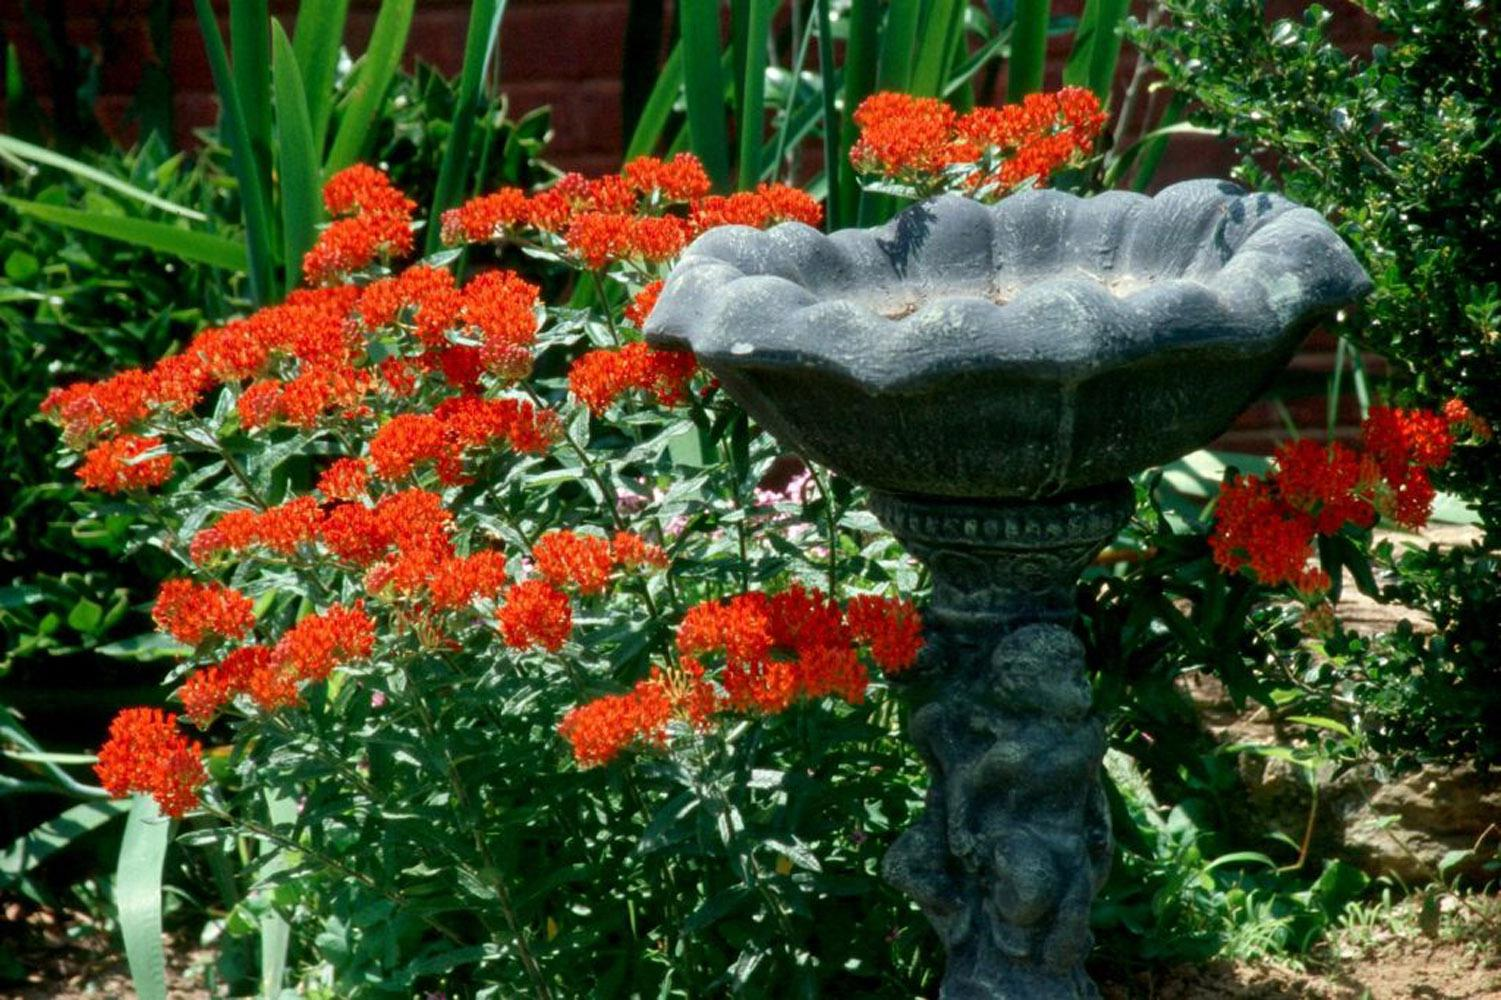 The native butterly weed Ascelpias tuberosa features bright orange flowers that will attract Monarch butterflies and put on a show the whole family will enjoy.